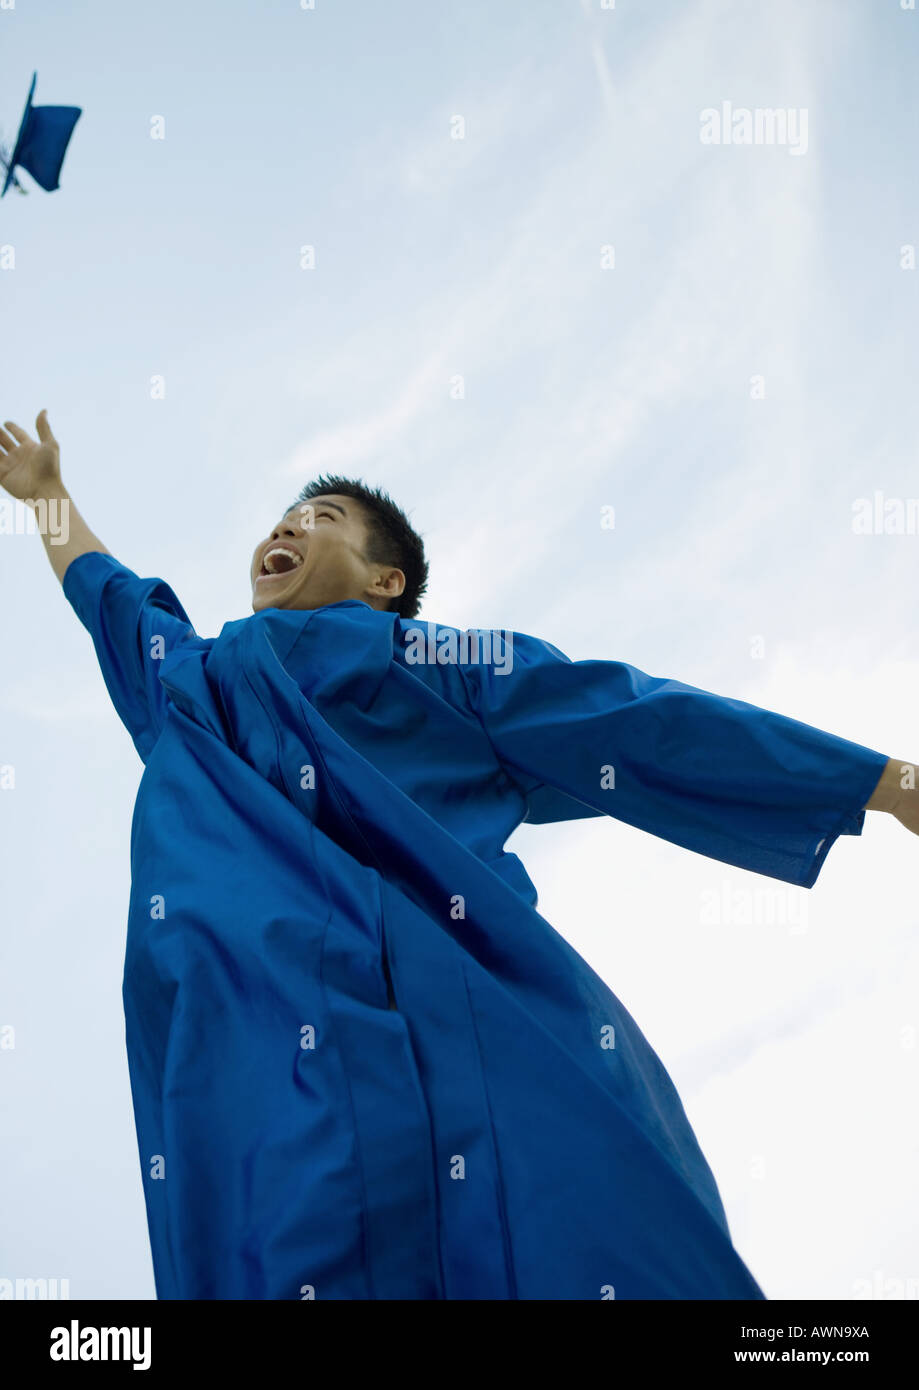 Male graduate throwing cap - Stock Image